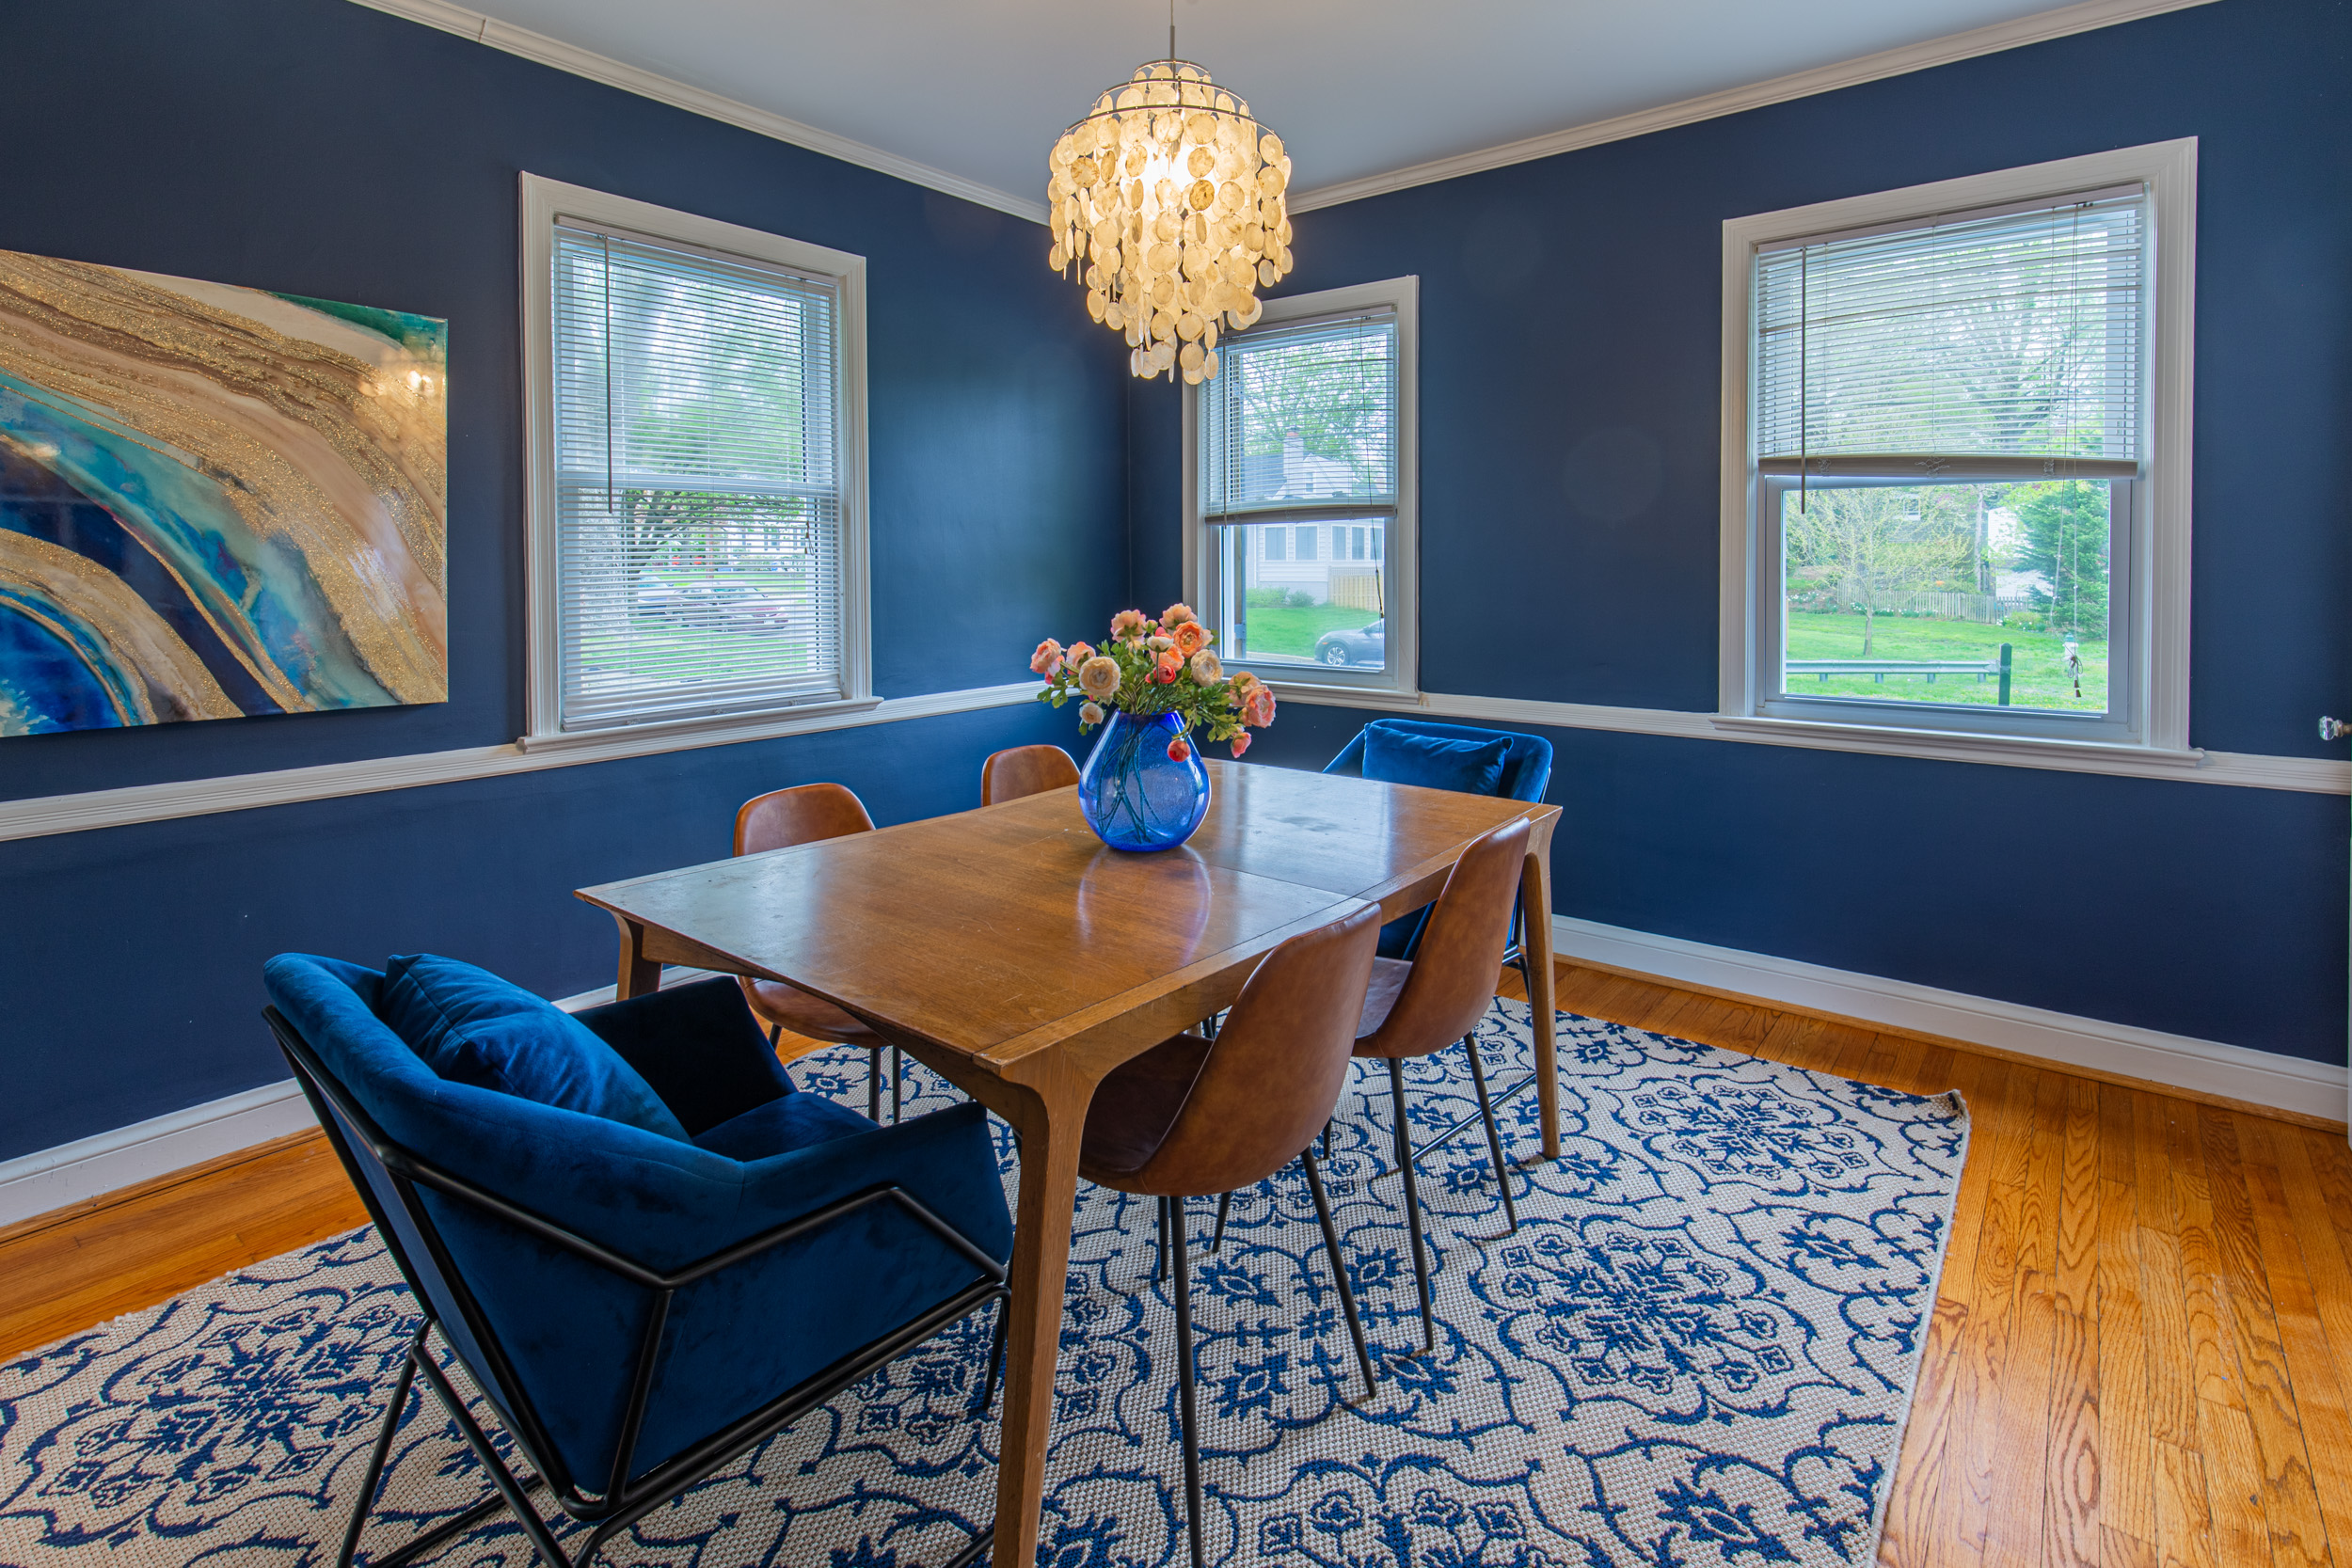 luxurious blue dining room